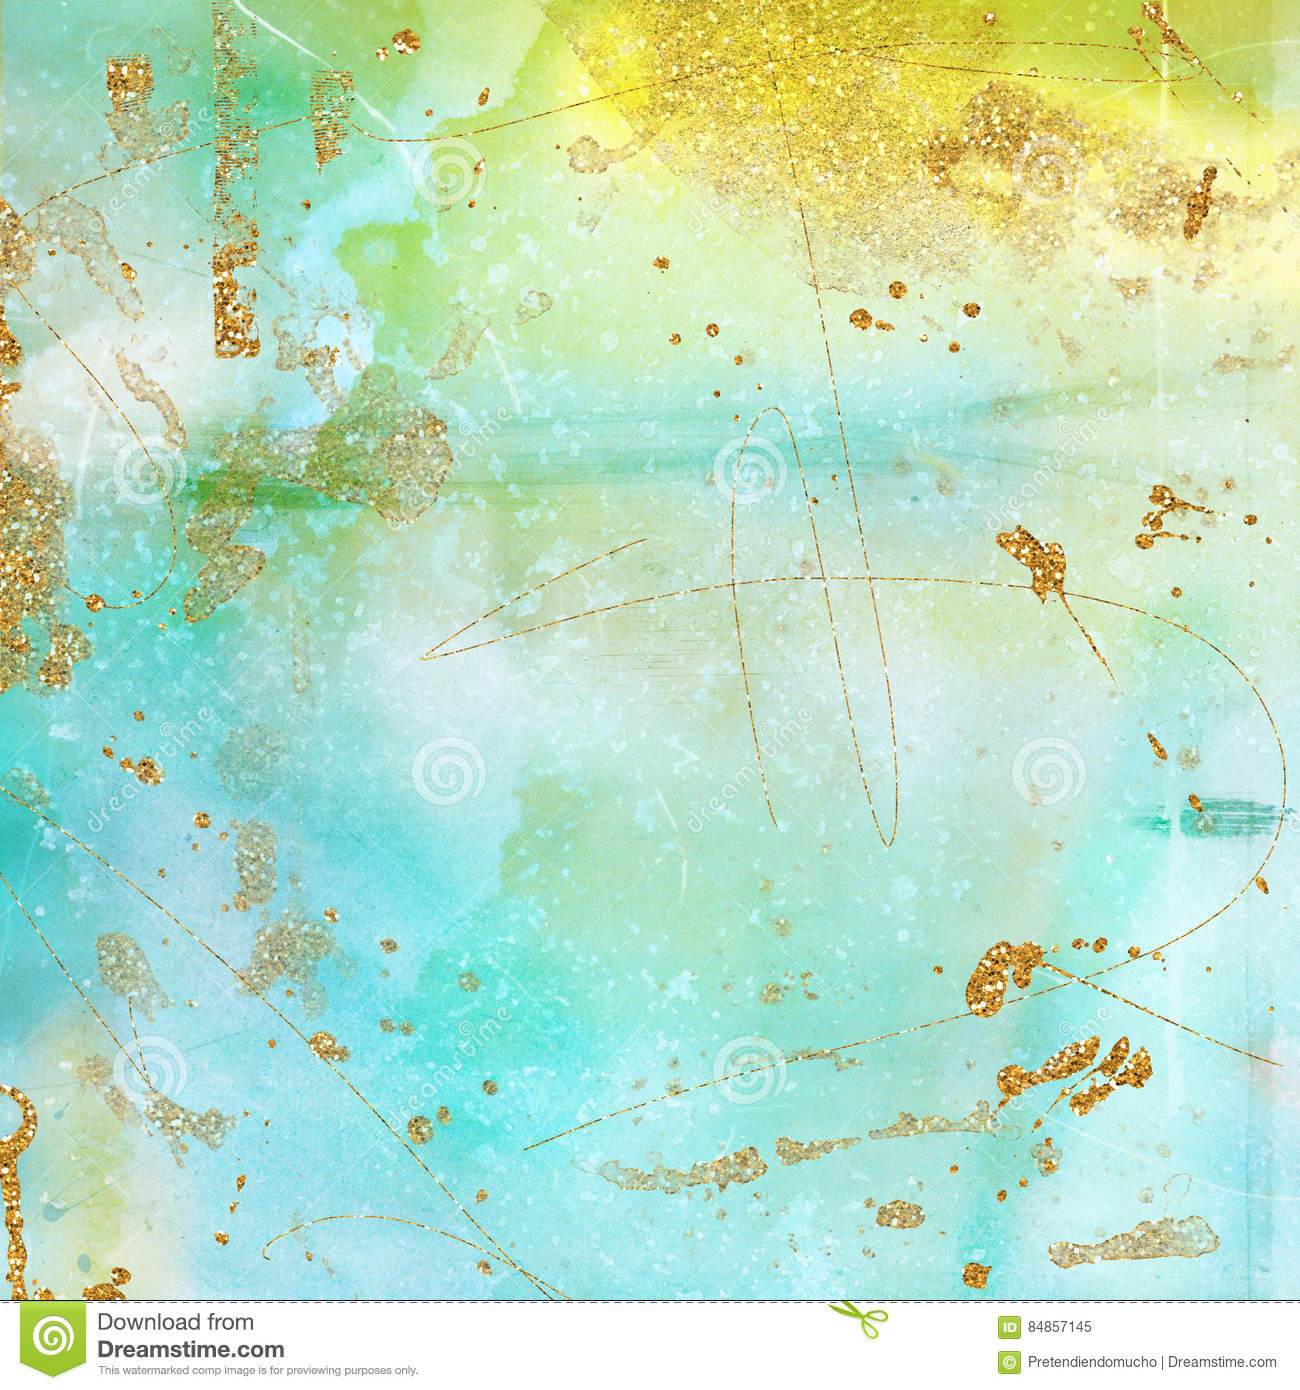 The Texture Of Teal And Turquoise: Vintage Background Texture In Mint, Turquoise, Yellow And